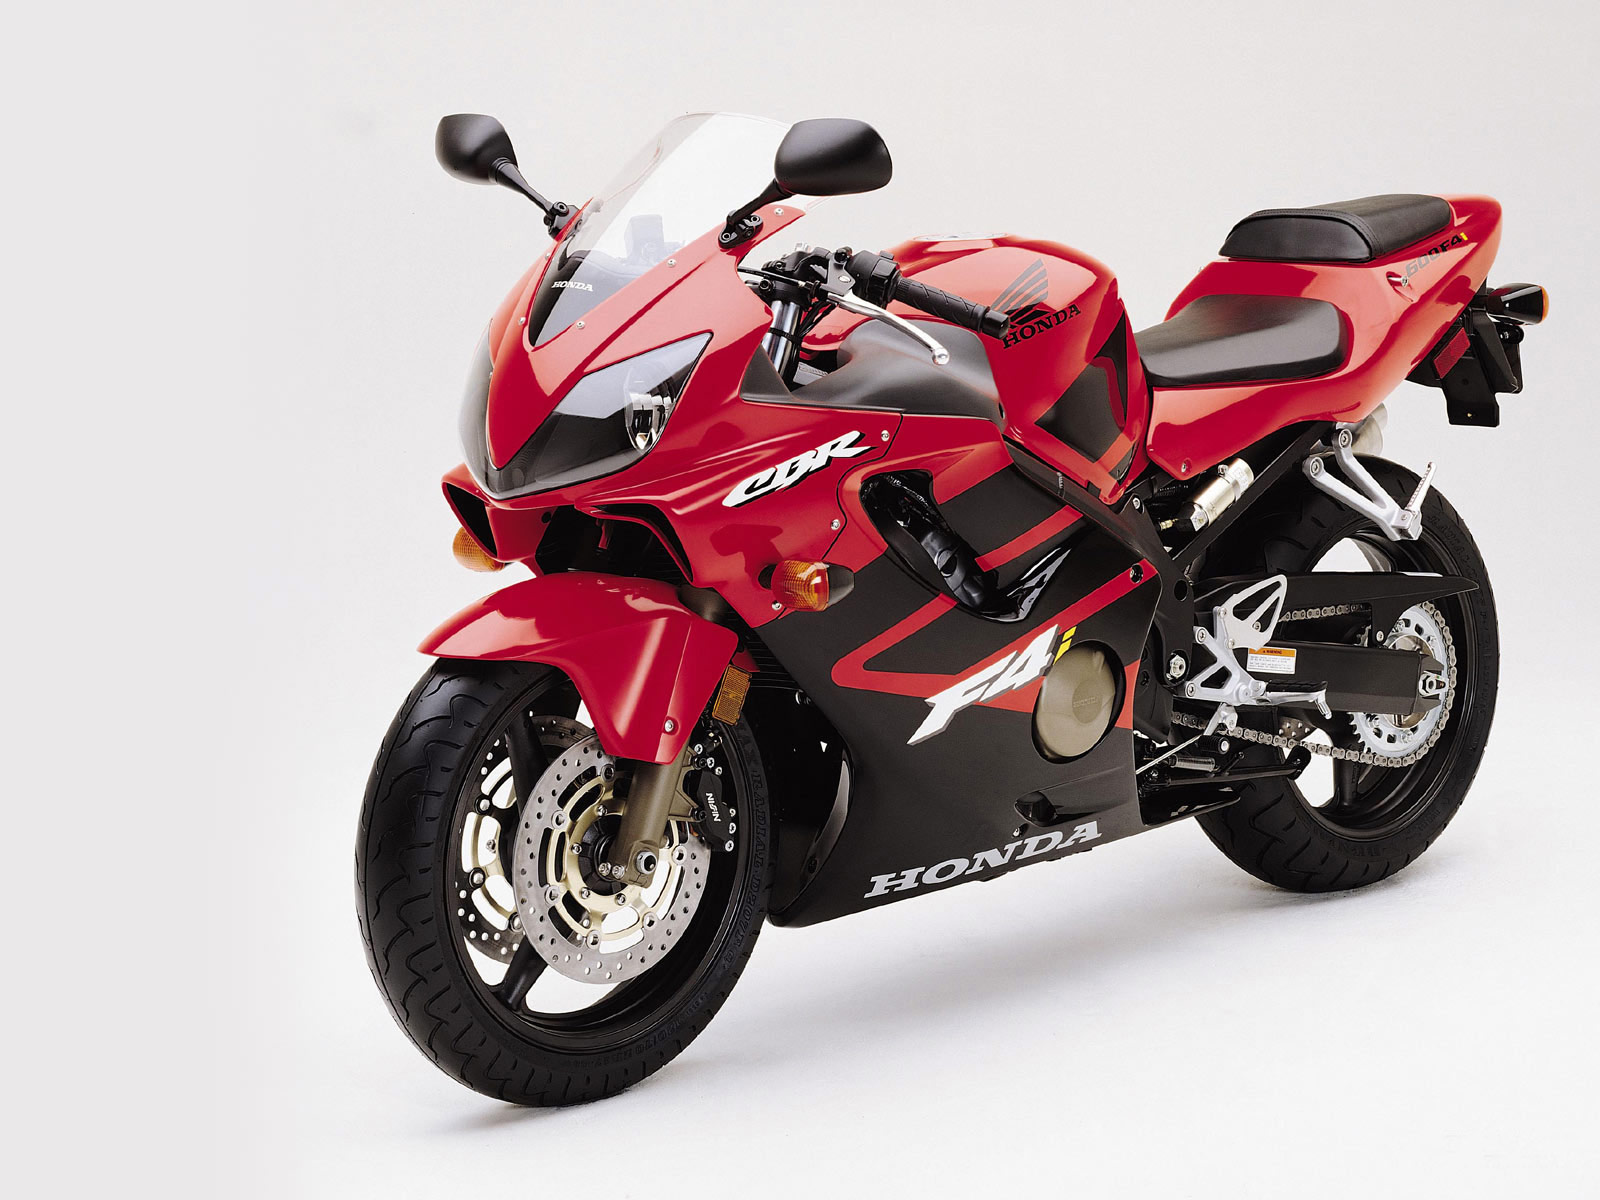 You can also find the latest images of the 2001 honda cbr 600 f4i in the  gallery below :